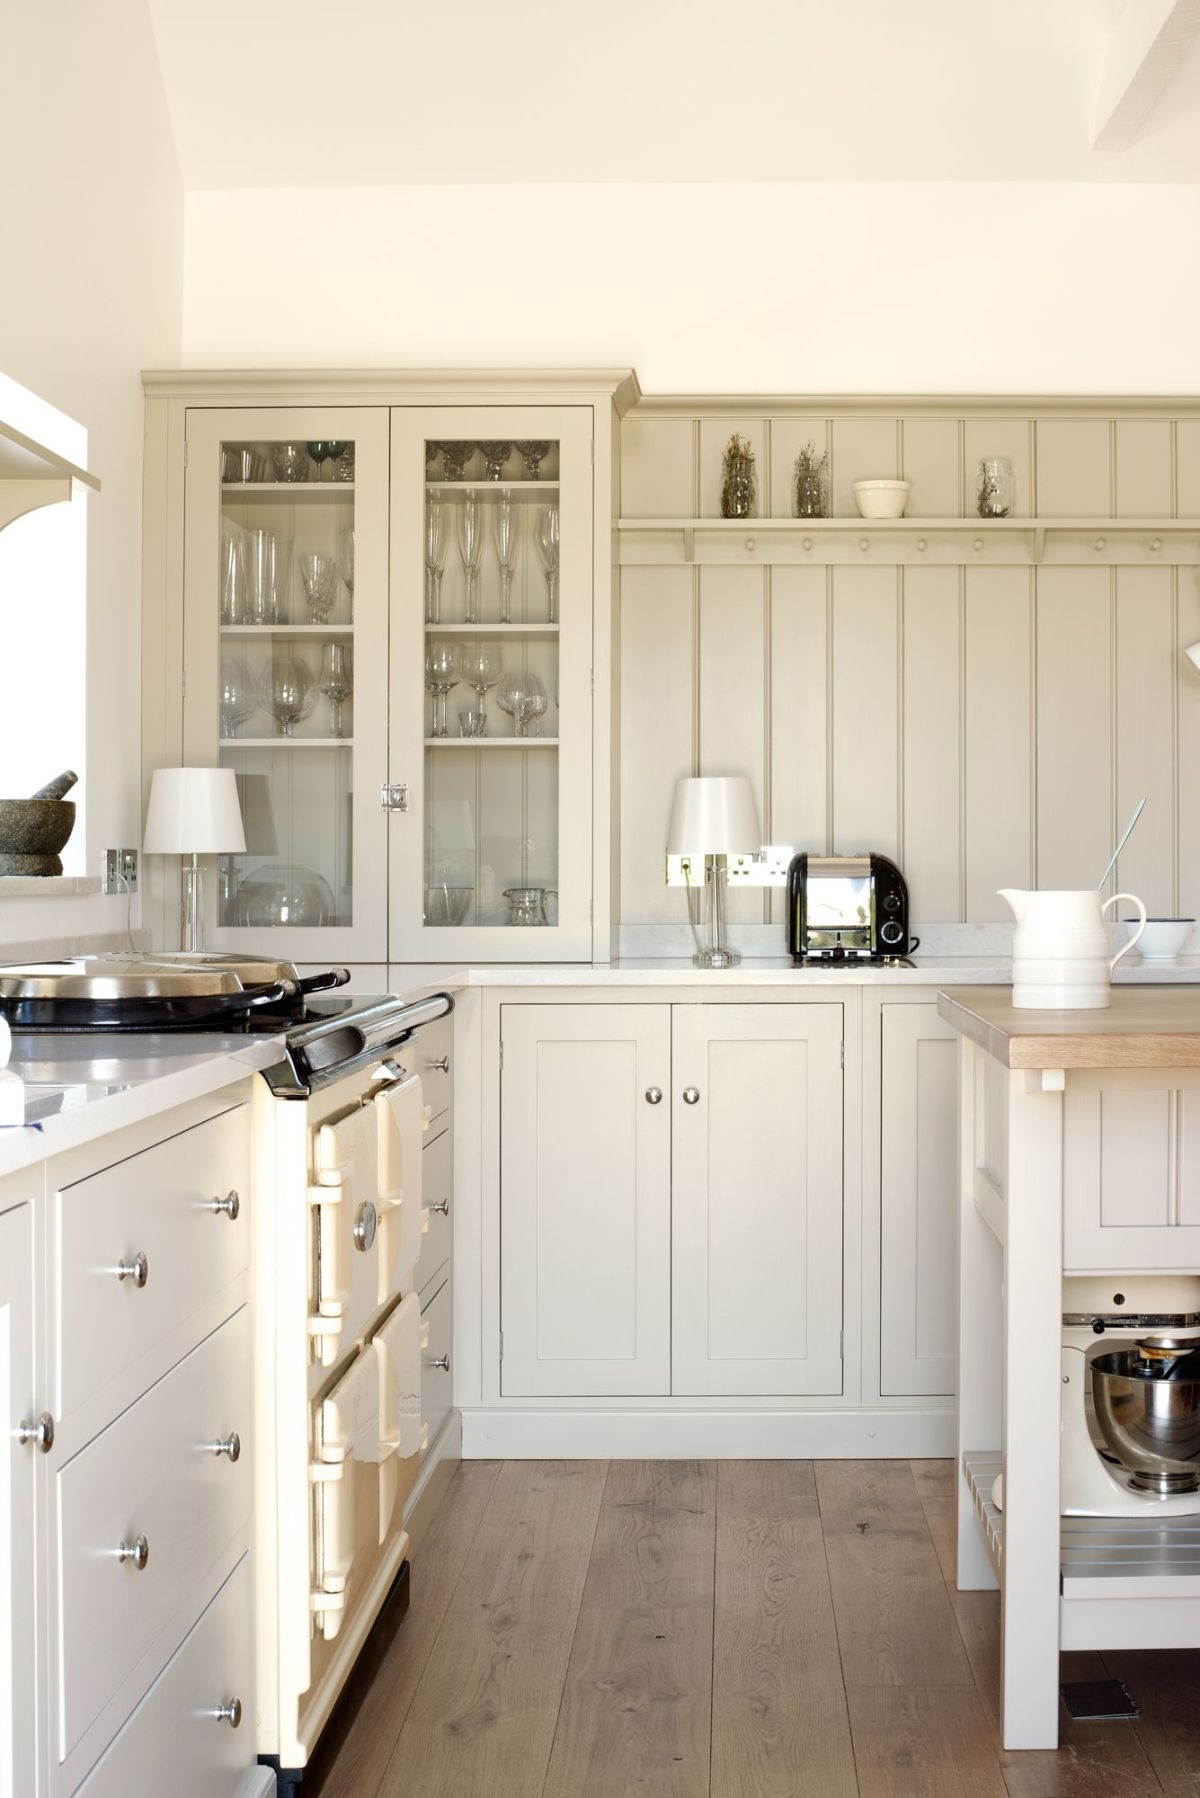 9 cream kitchen ideas that prove beige is back   Real Homes